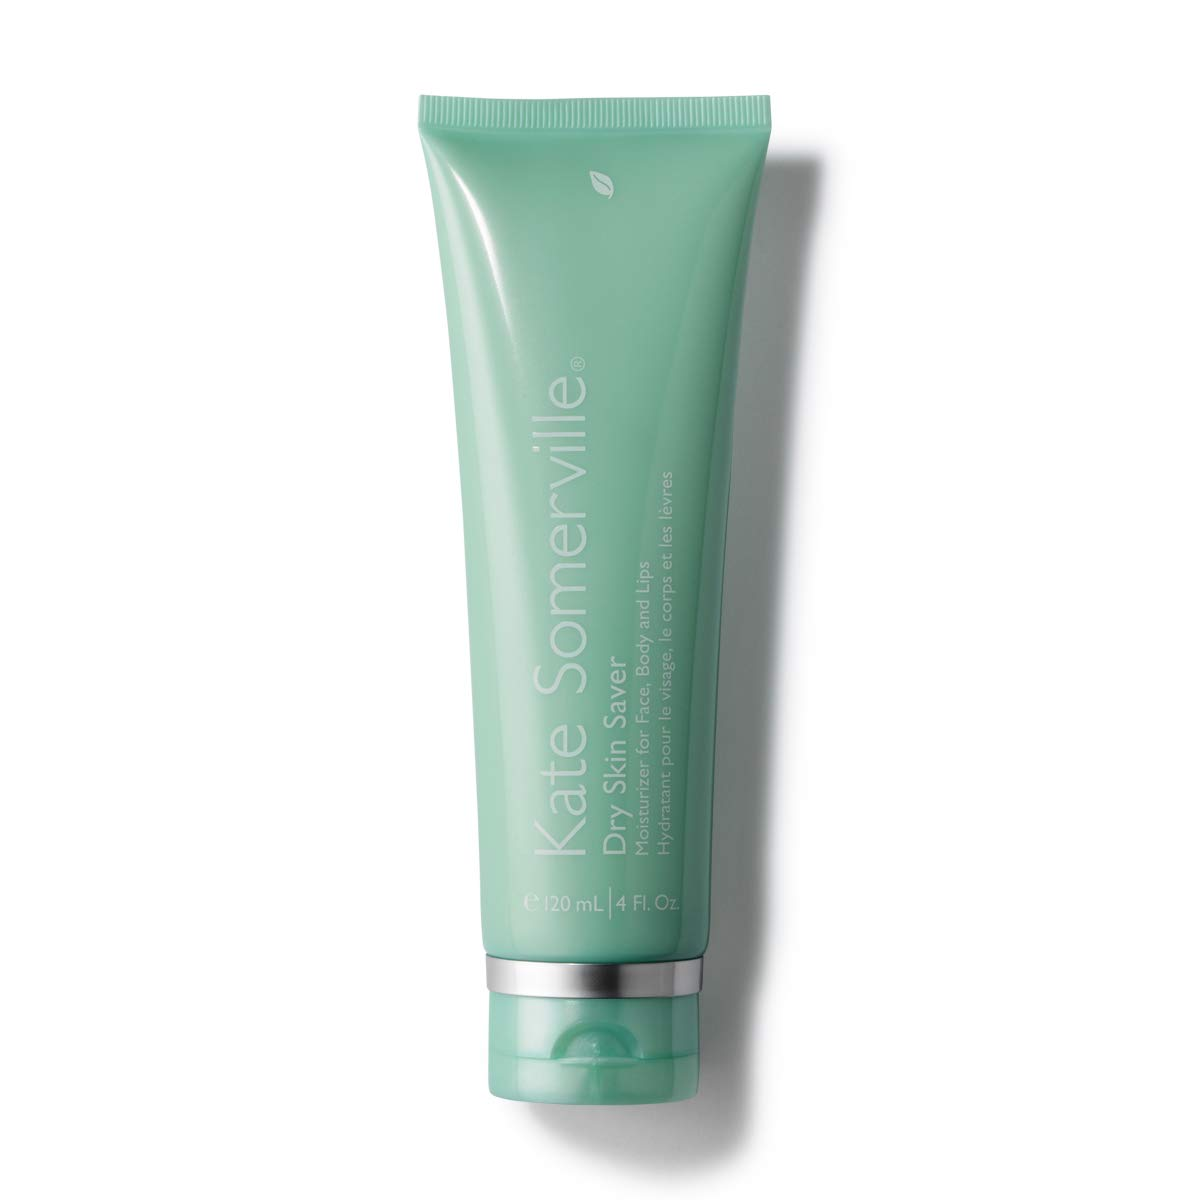 Kate Somerville Dry Skin Saver (4 Fl. Oz.) Essential Hydration to Relieve Dryness, Uncomfortable Tightness and Roughness - Dermatologist-Tested and Fragrance-Free